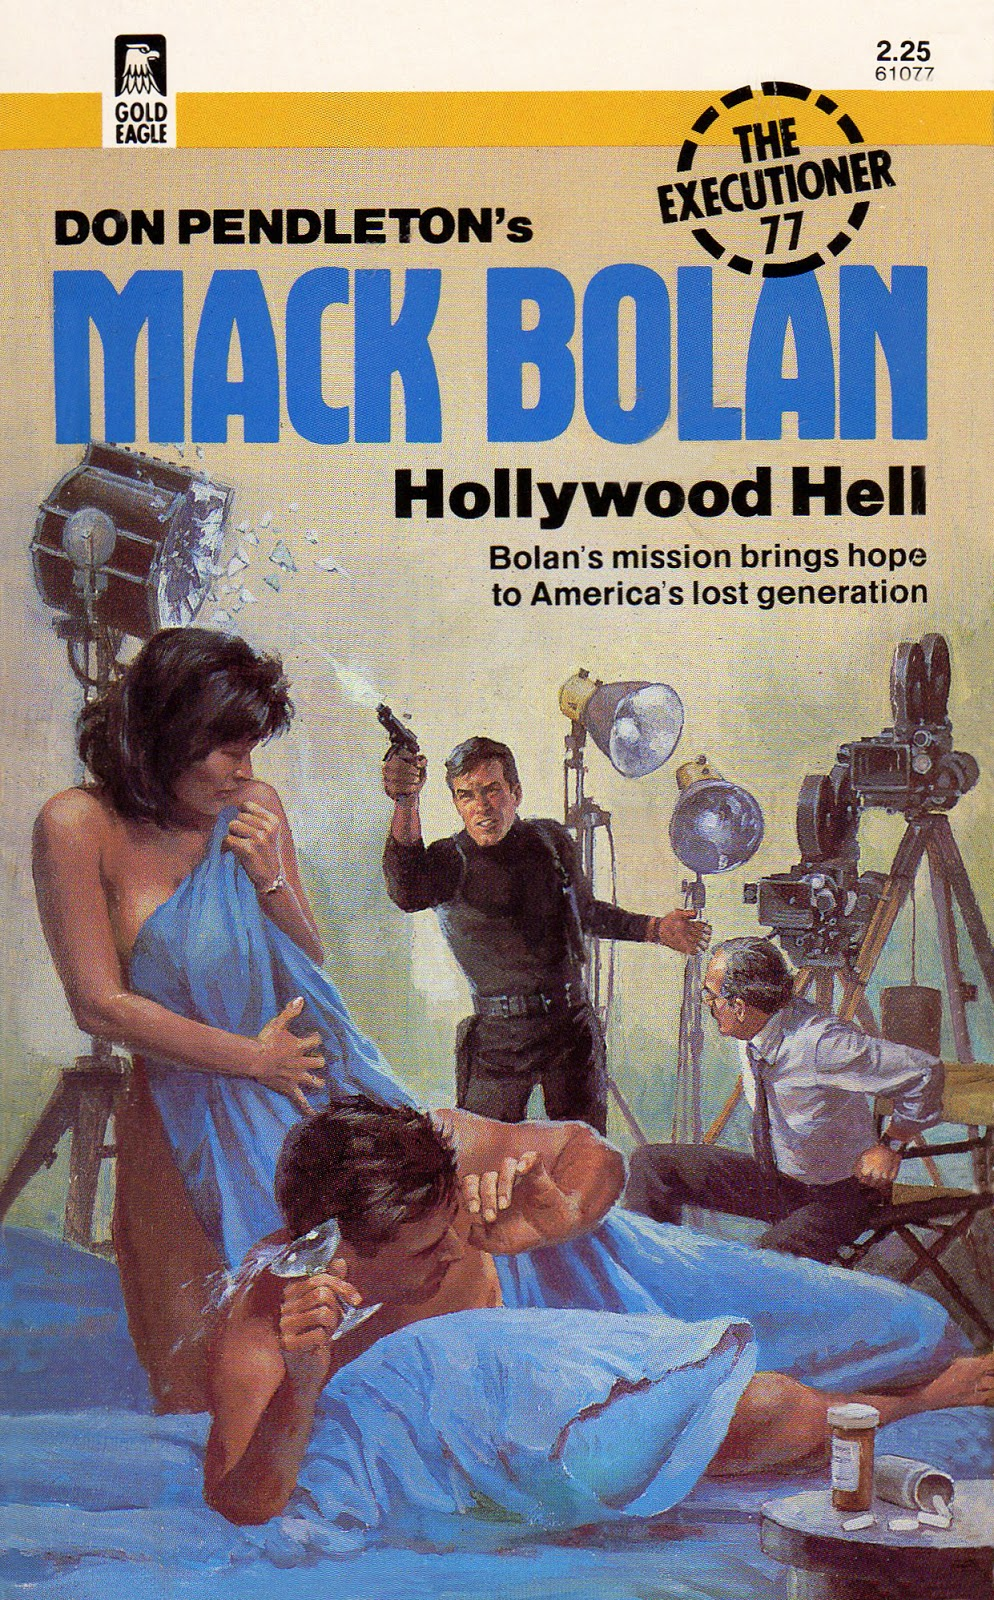 Paperback warrior march 2018 hollywood hell the 77th book in the durable mack bolan saga is a transitional novel sitting at the half way point between don pendletons original fandeluxe Image collections